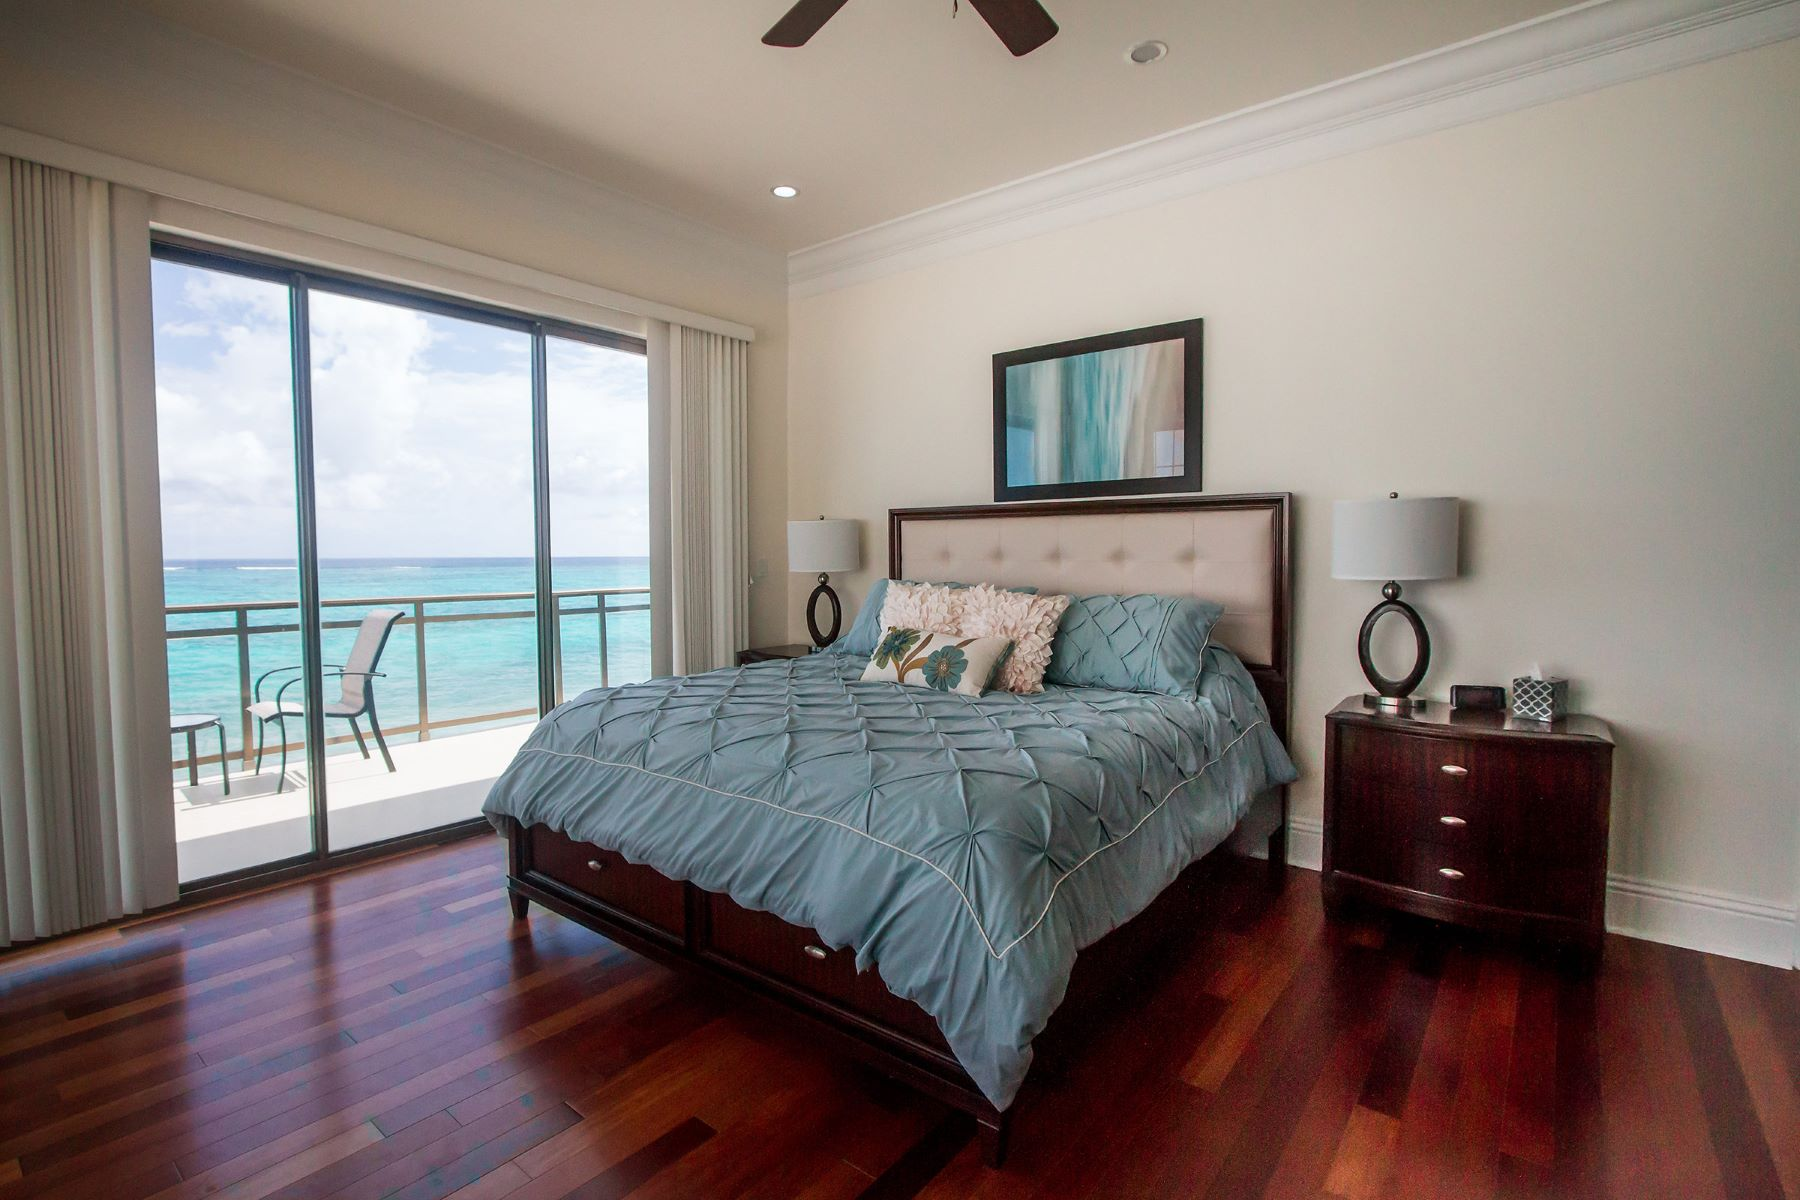 Additional photo for property listing at Columbus Cove Beachfront Townhouse Columbus Cove, Love Beach, Nassau And Paradise Island Bahamas